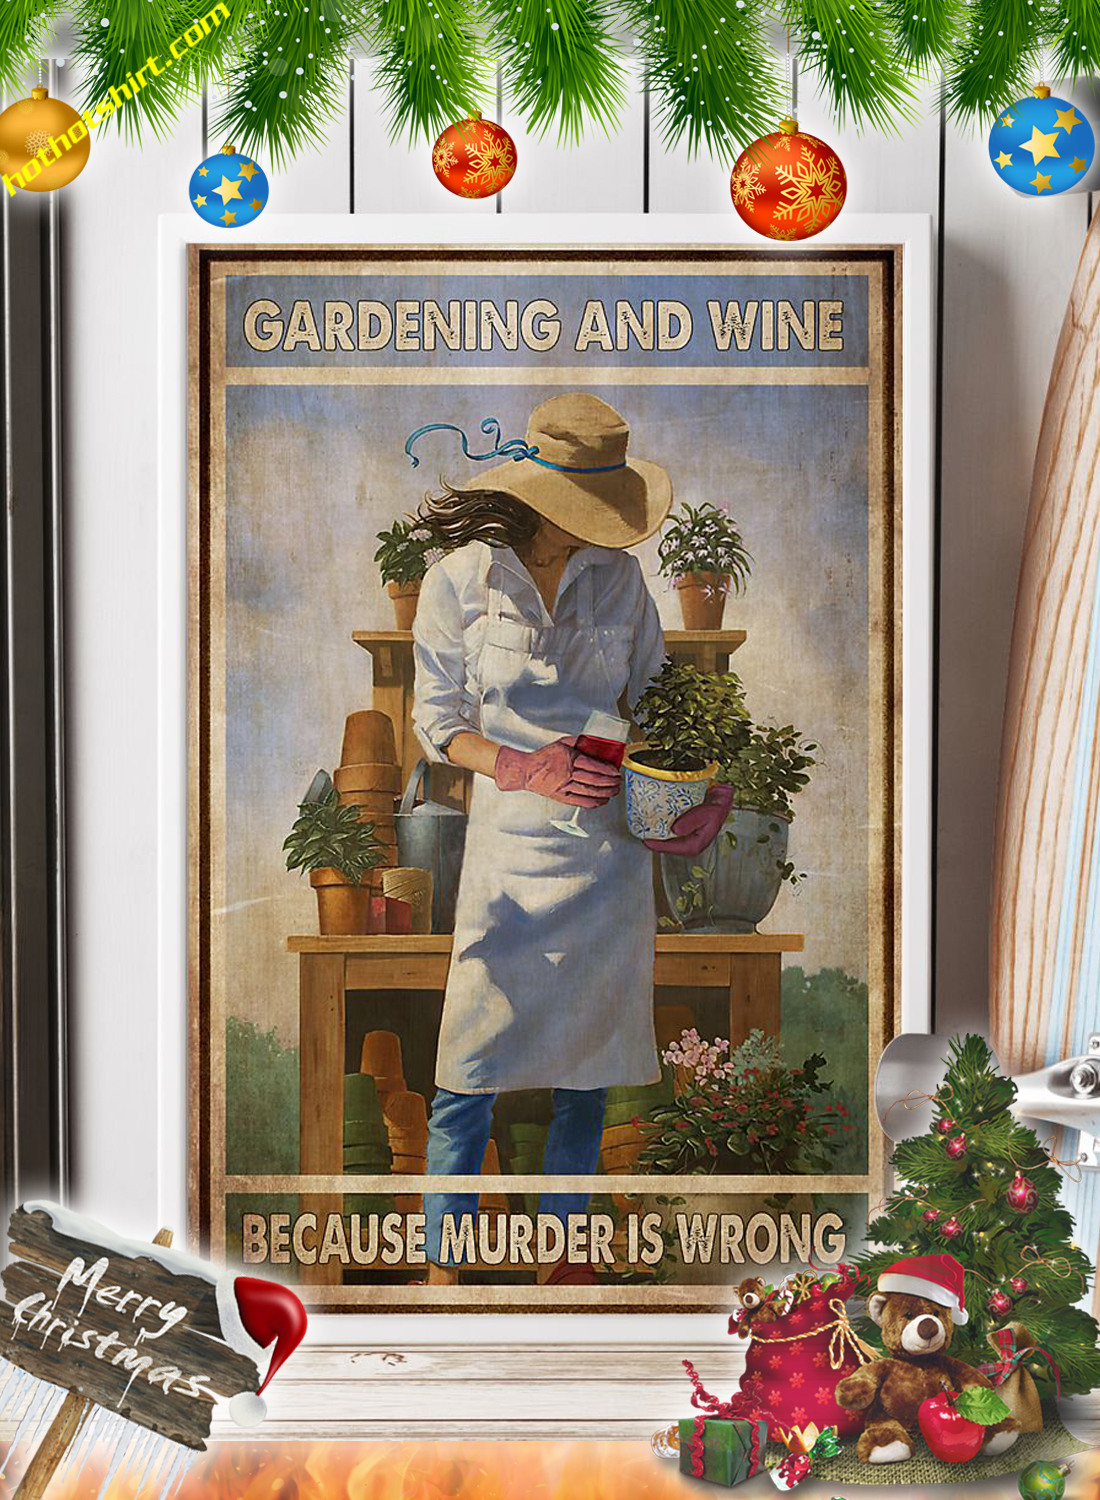 Girl Gardening and wine because murder is wrong poster 1